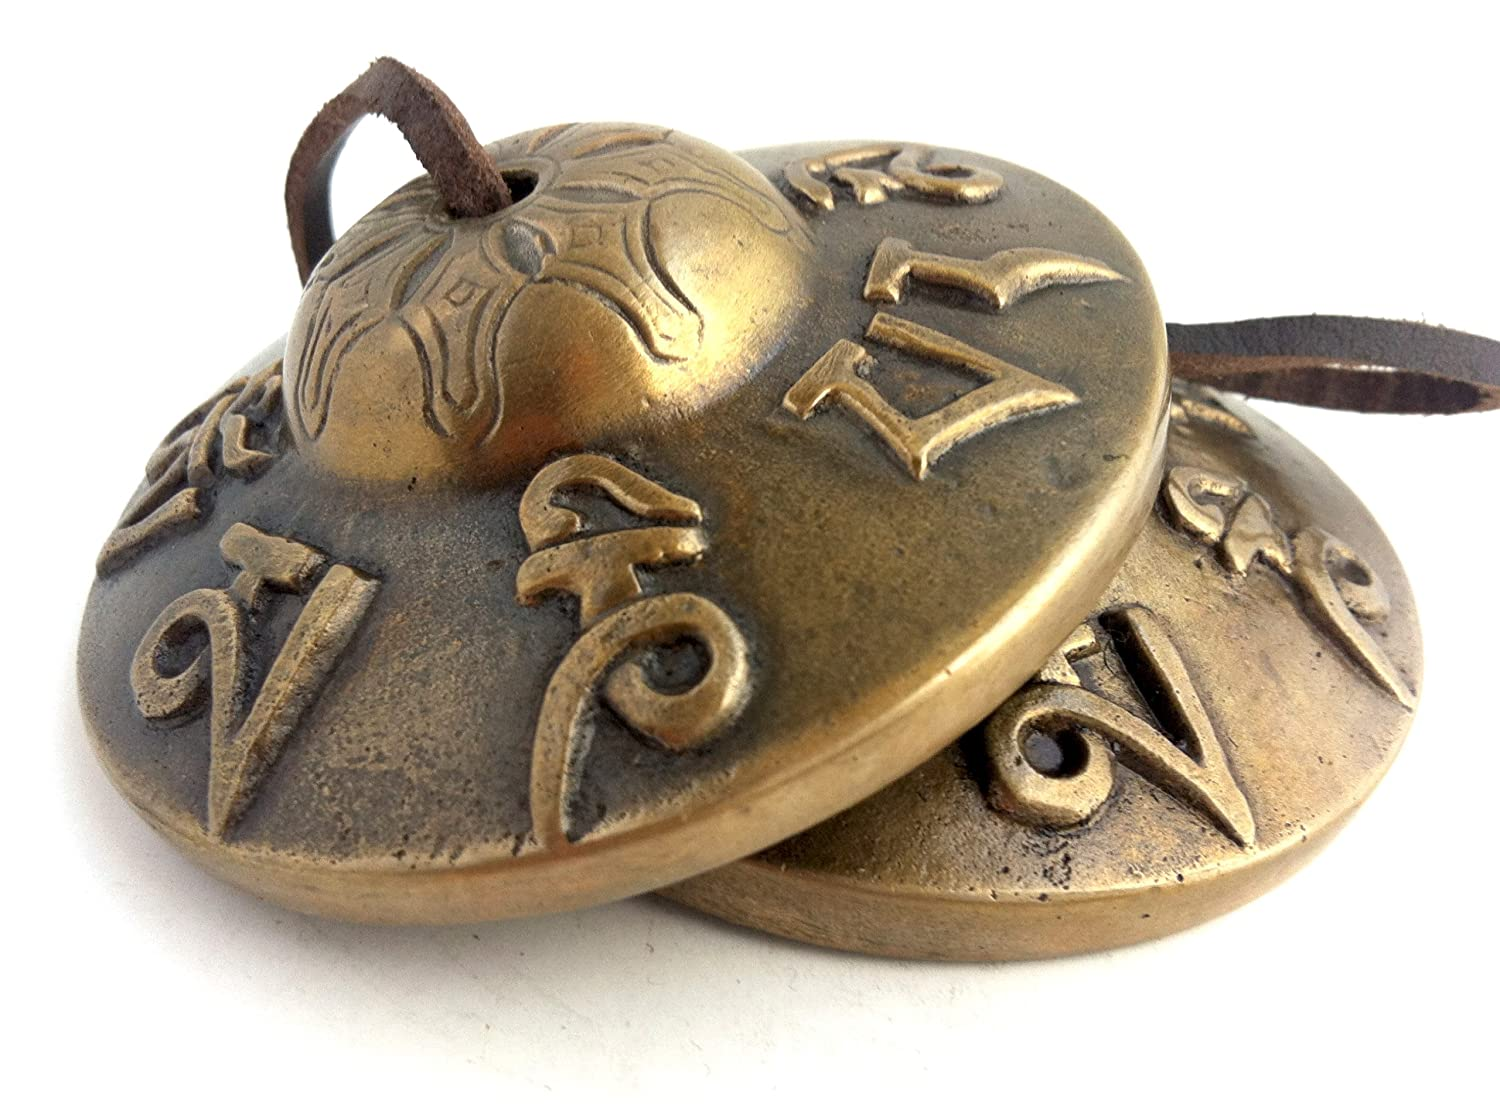 """Tibetan Tingsha Cymbals ~ 3 inches-""""Om Mane Padme Hum"""" Symbols Embossed~Hand Tuned Meditation Tibetan Bell ~ Traditional Percussion Instrument for folk devotional music~Handmade in Nepal"""